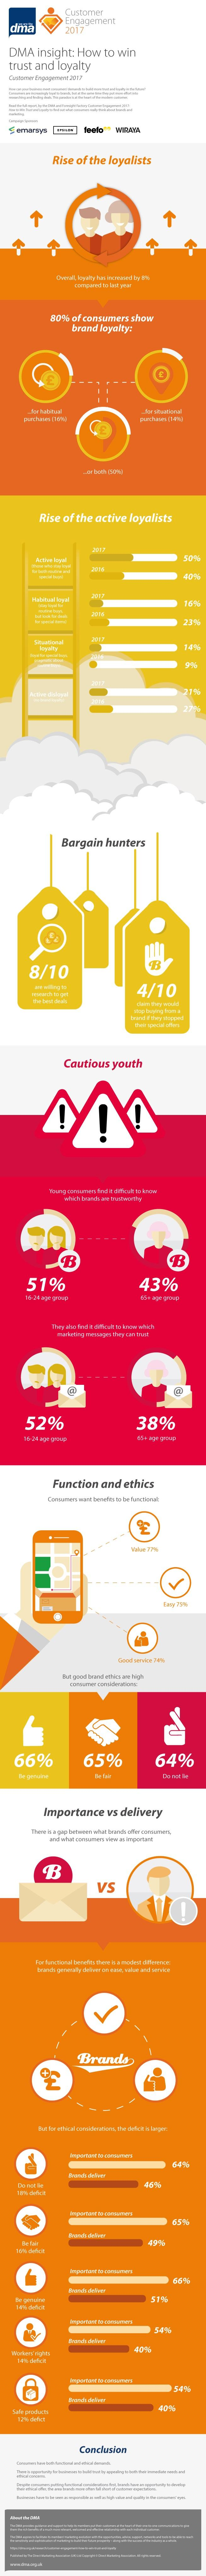 Loyalty infographic